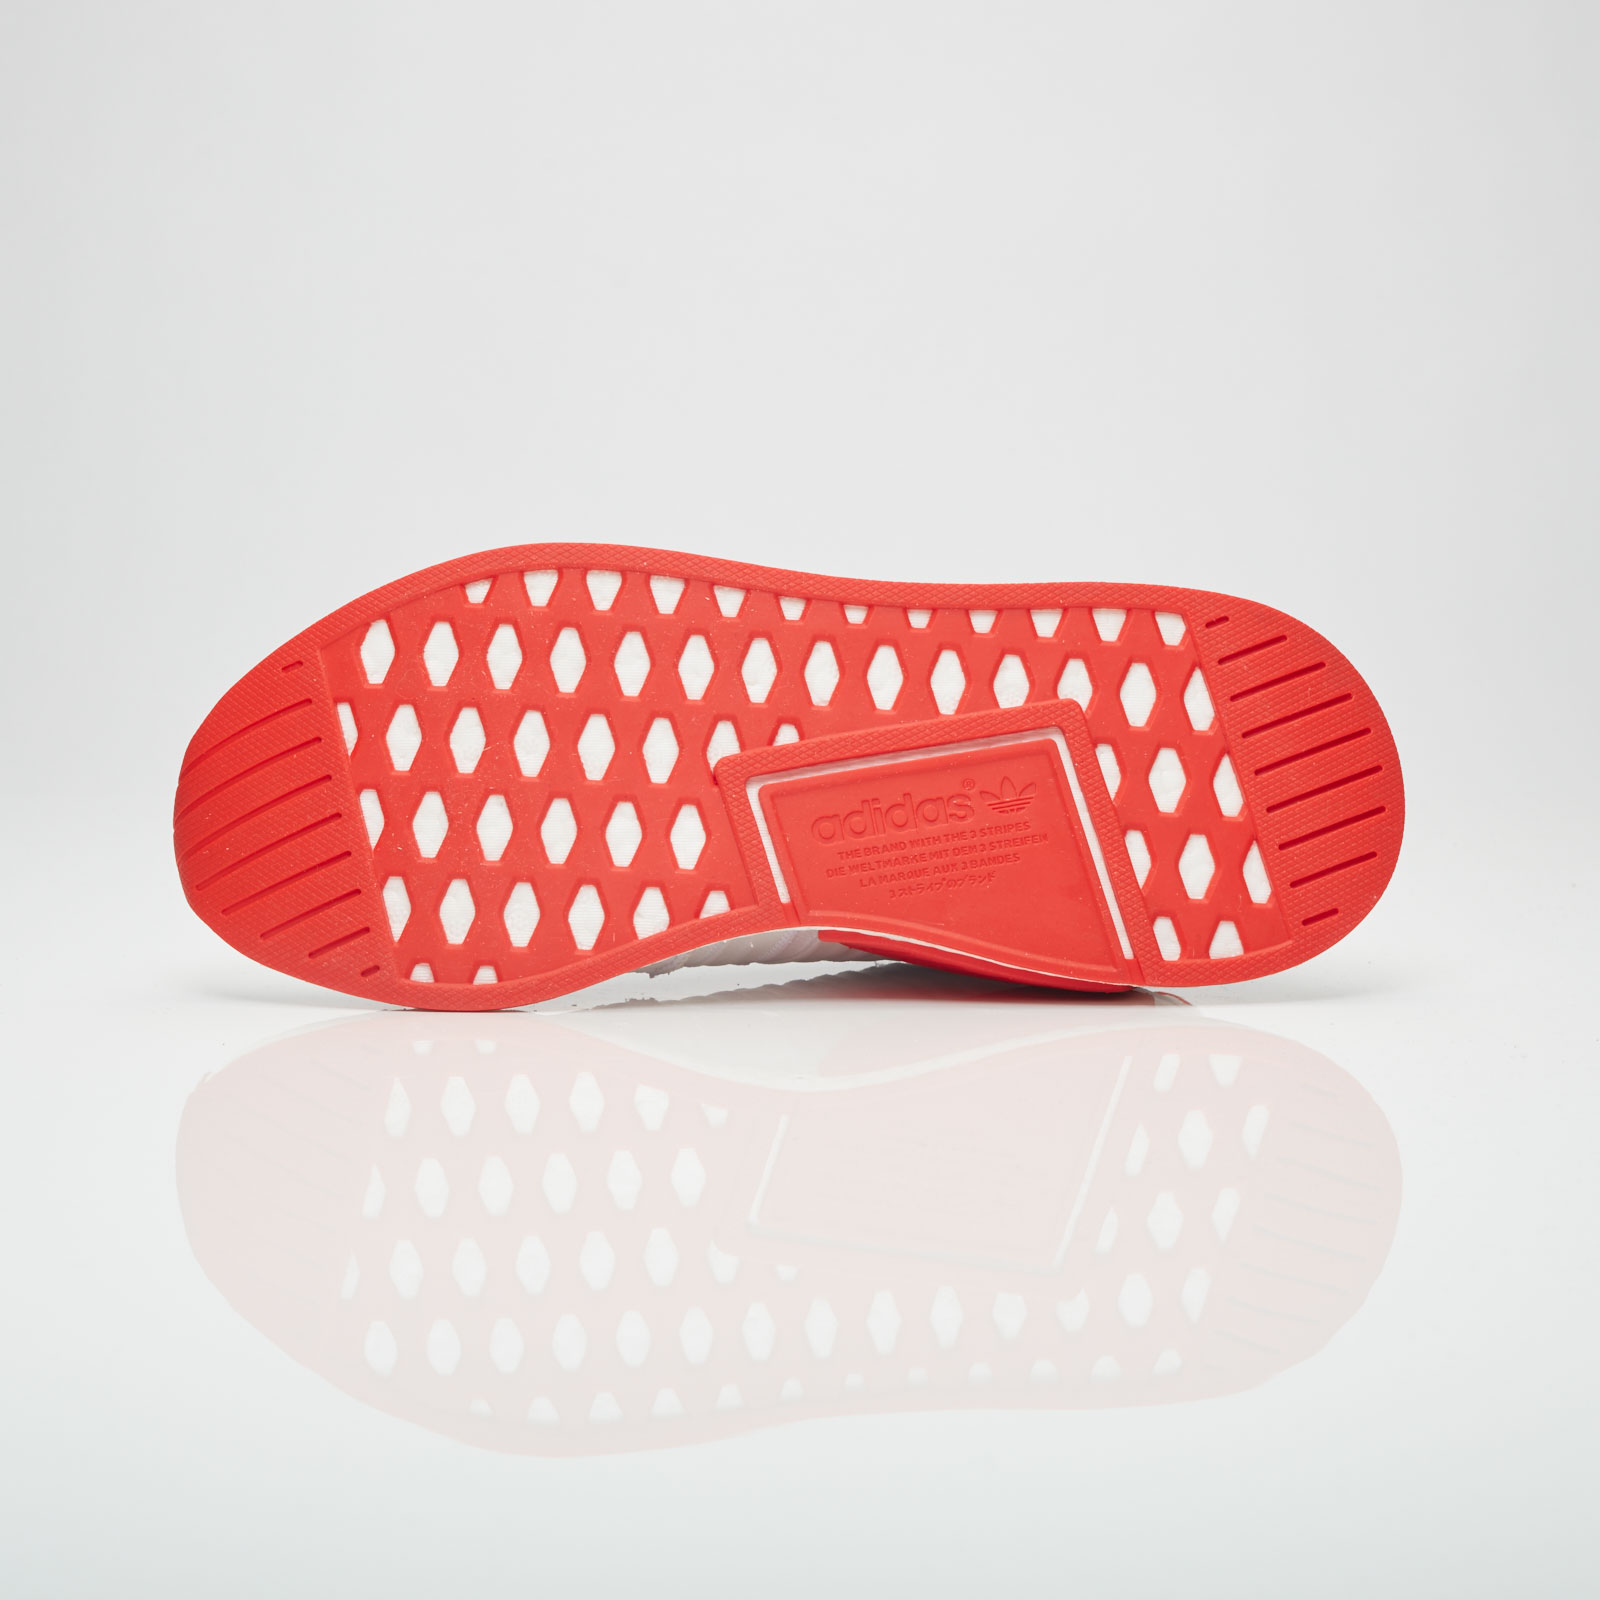 f6eee8b94c725 ... Red outsole manufactured by continental for incredible traction adapted  for all surfaces